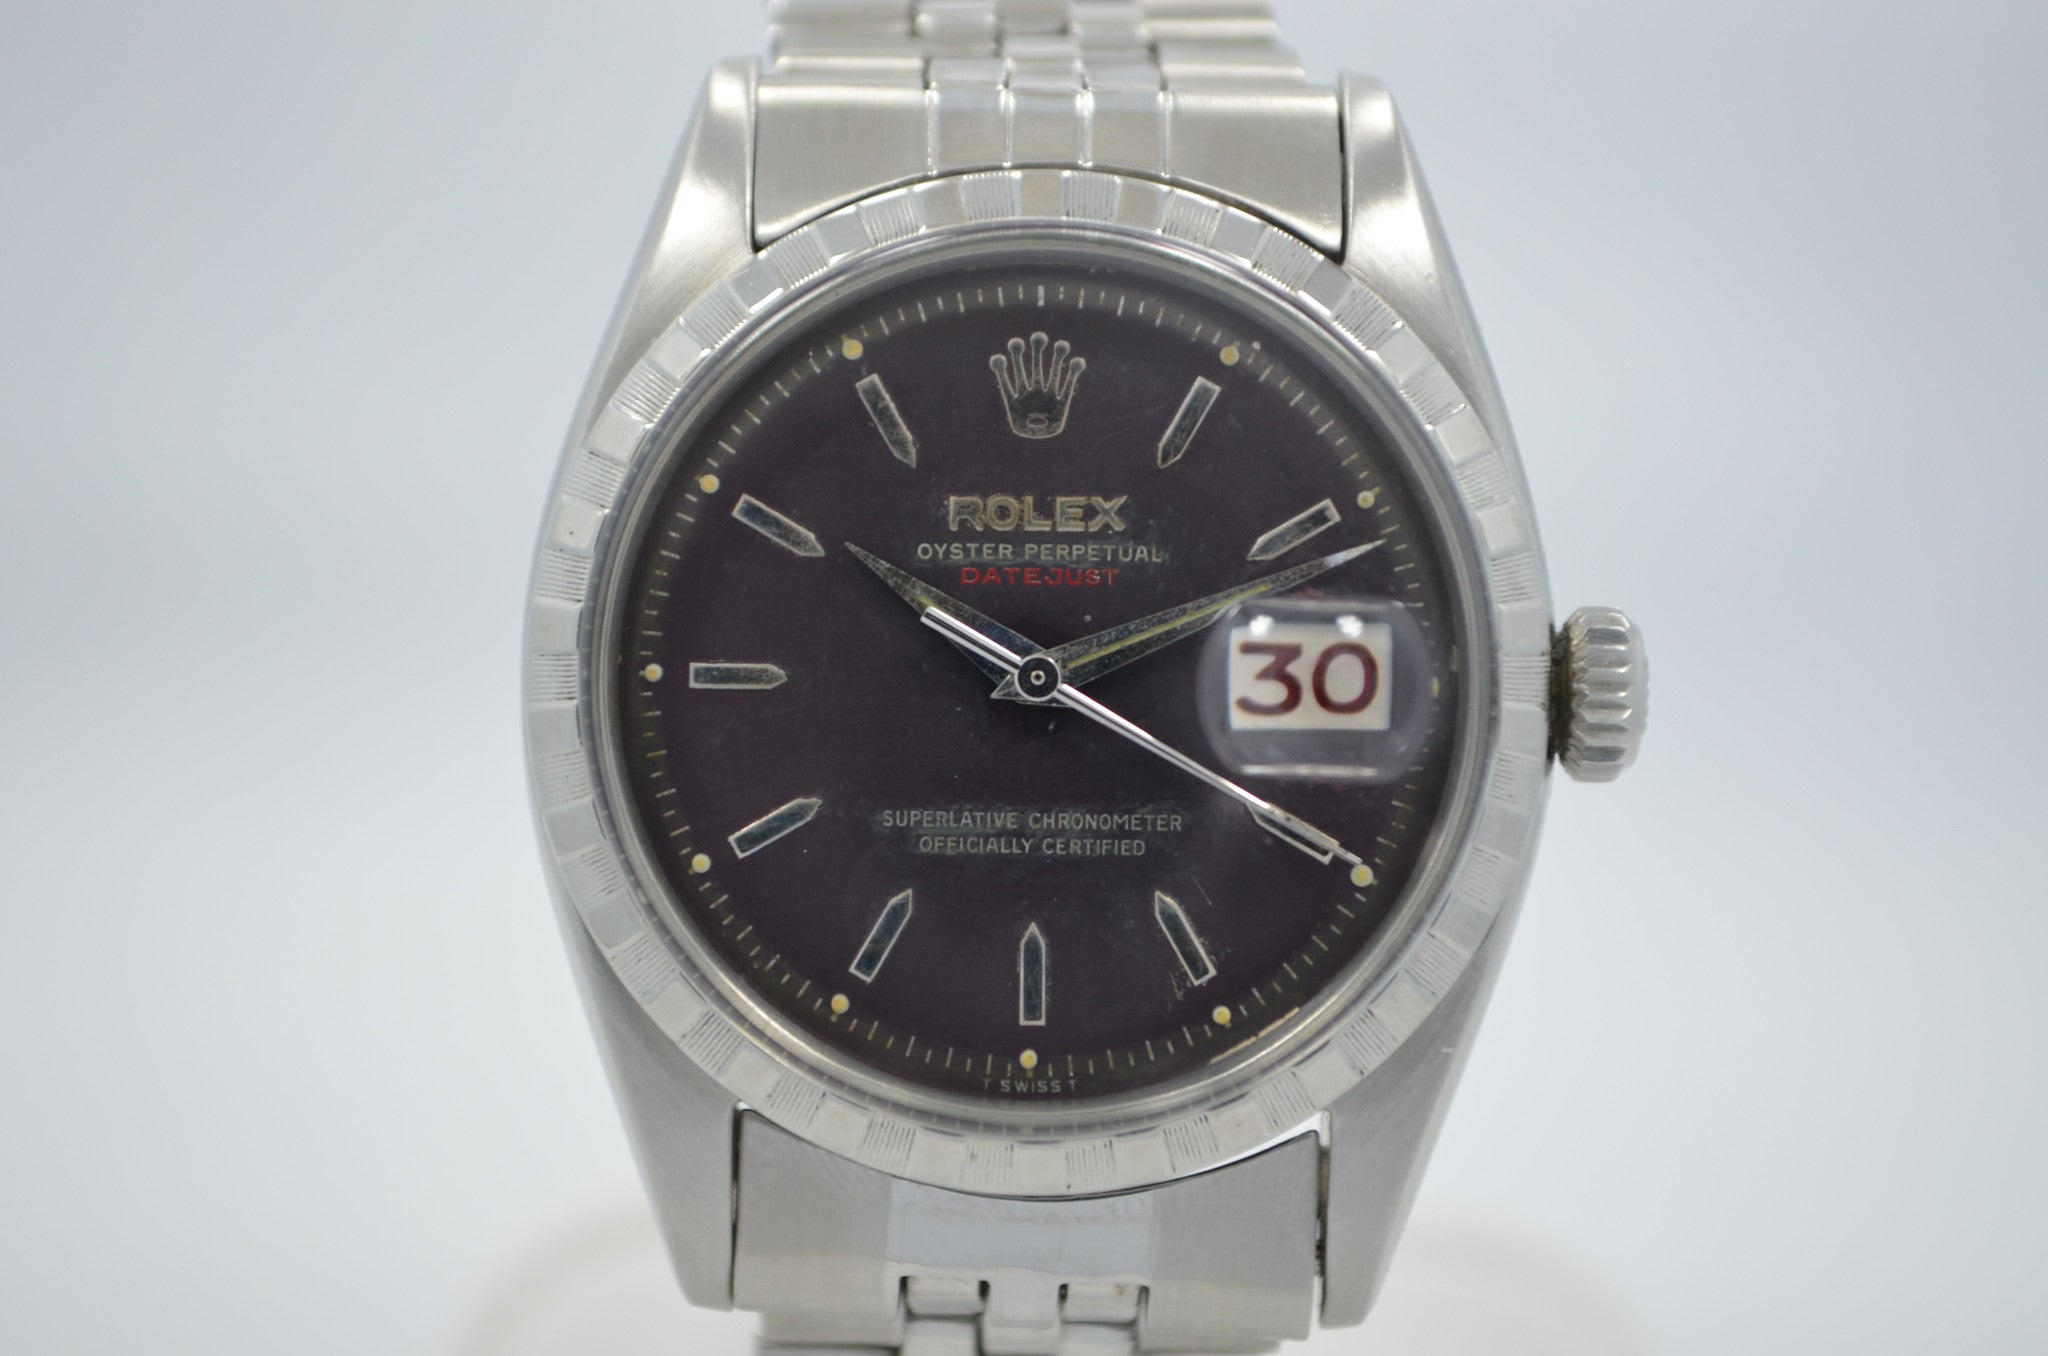 Vintage Rolex 6605 Red DateJust Steel Jubilee Checkerboard Bezel 1958 Wristwatch - Hashtag Watch Company